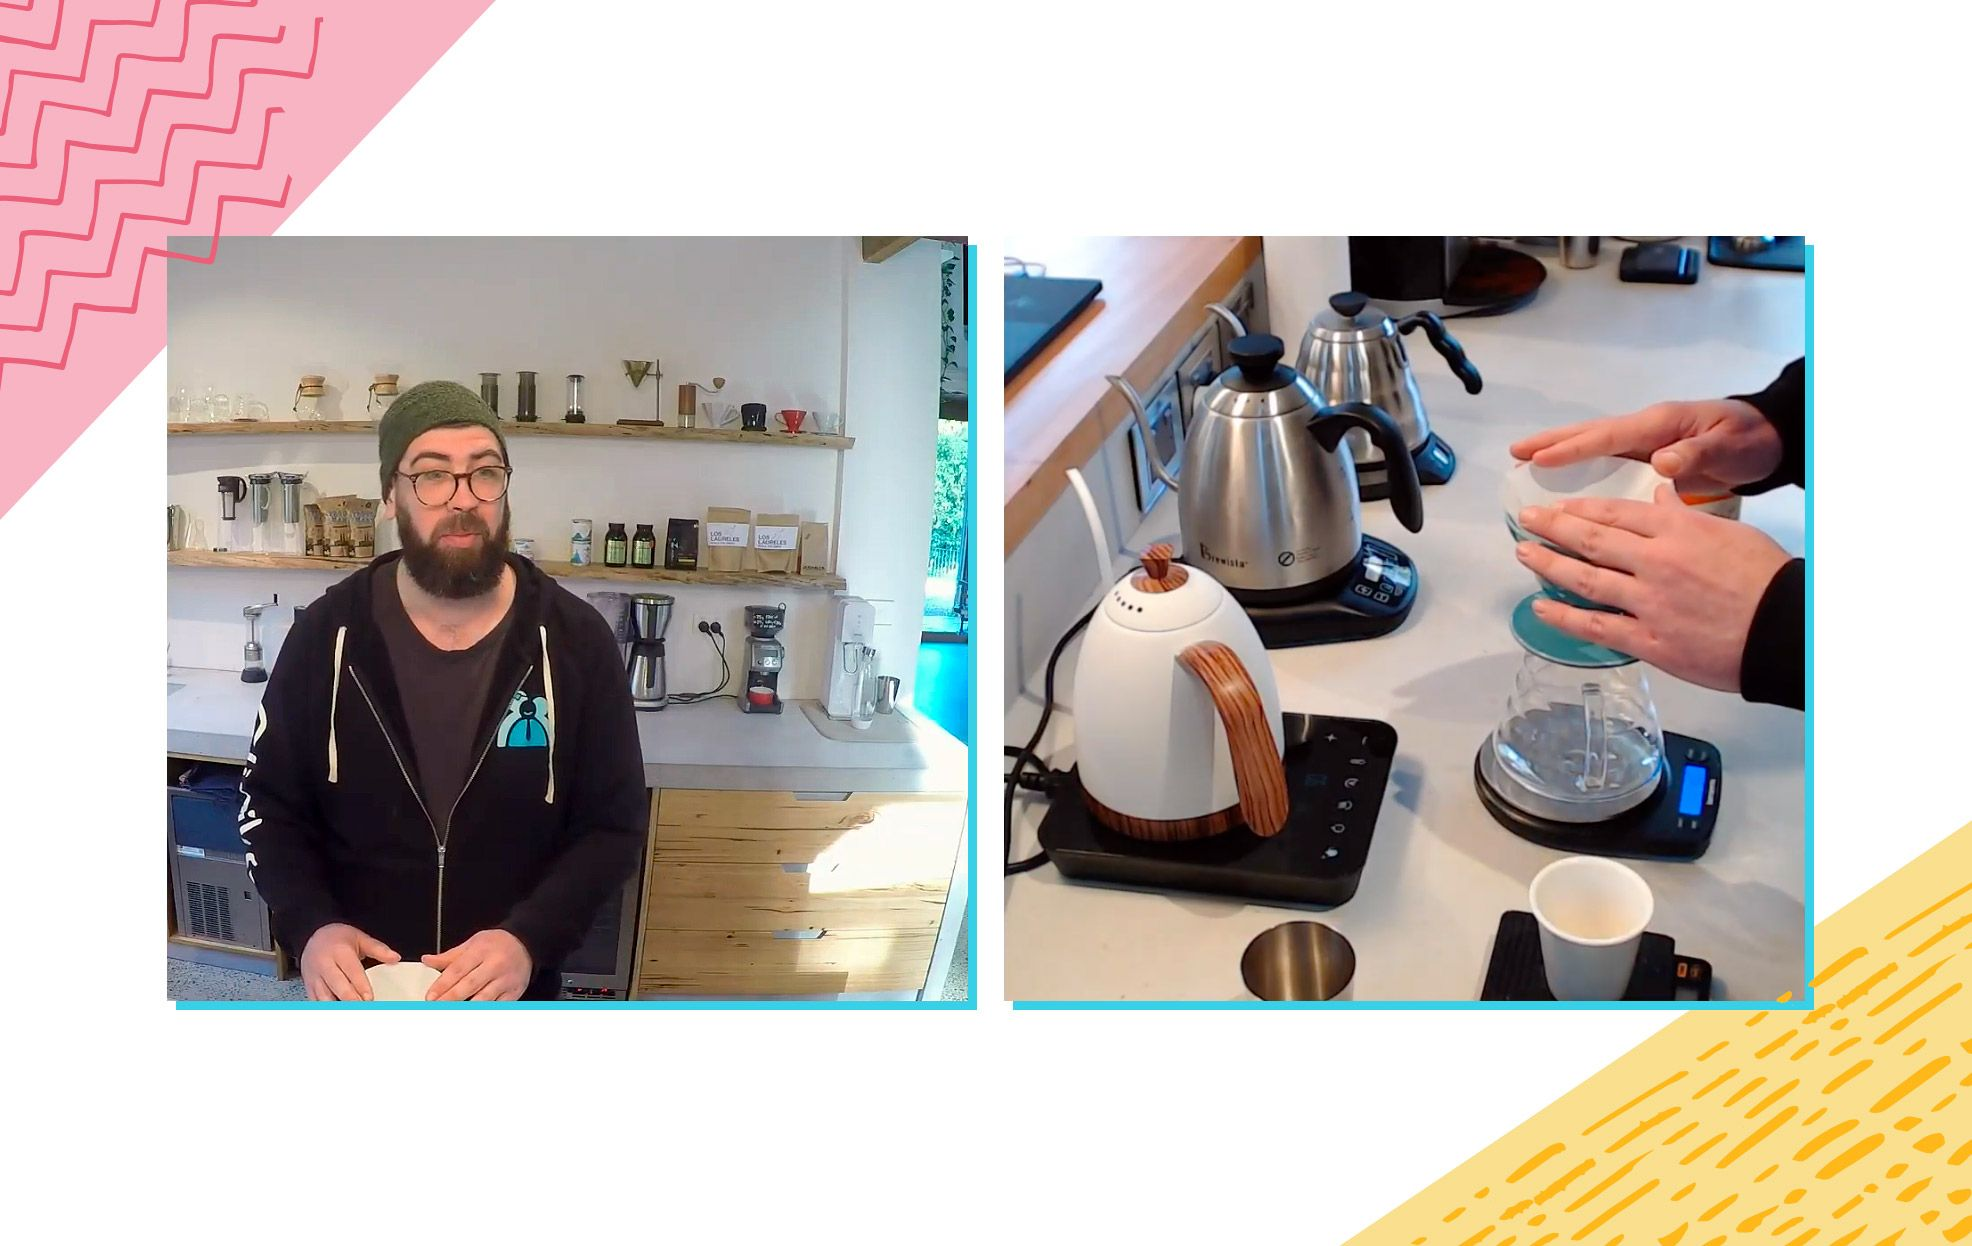 A split-image screenshot that shows Joel preparing his coffee (left) and his setup for V60 pour over (right).